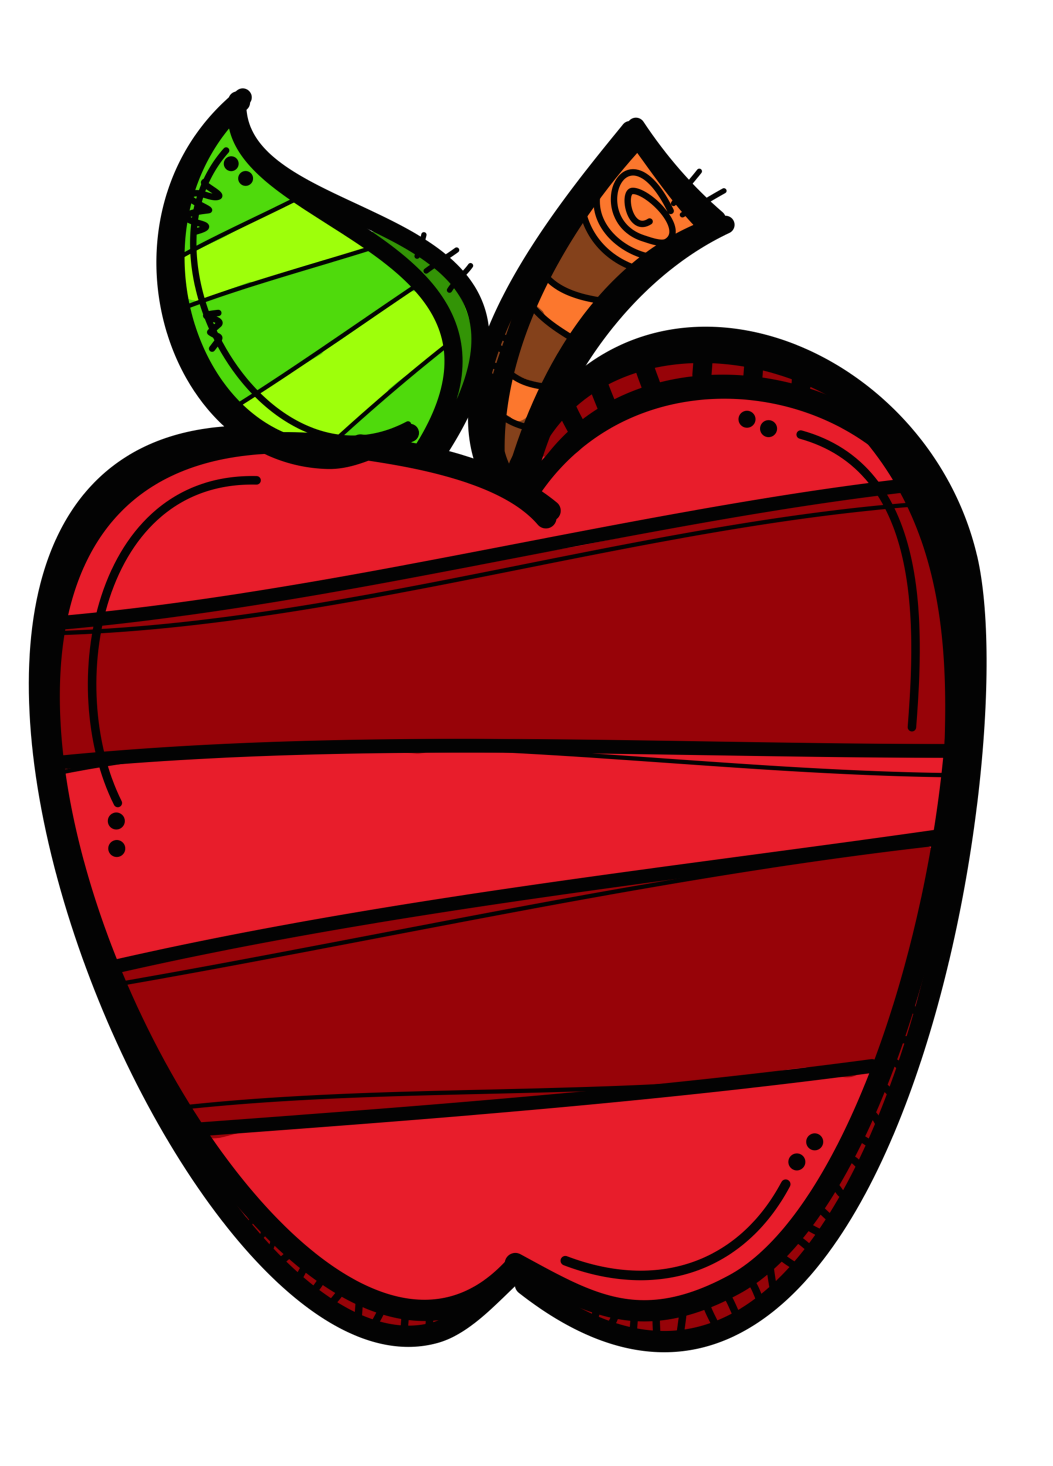 Book apple clipart jpg royalty free stock Pin by Kathleen Cummings on Art Ideas | Pinterest | Apples, Clip art ... jpg royalty free stock